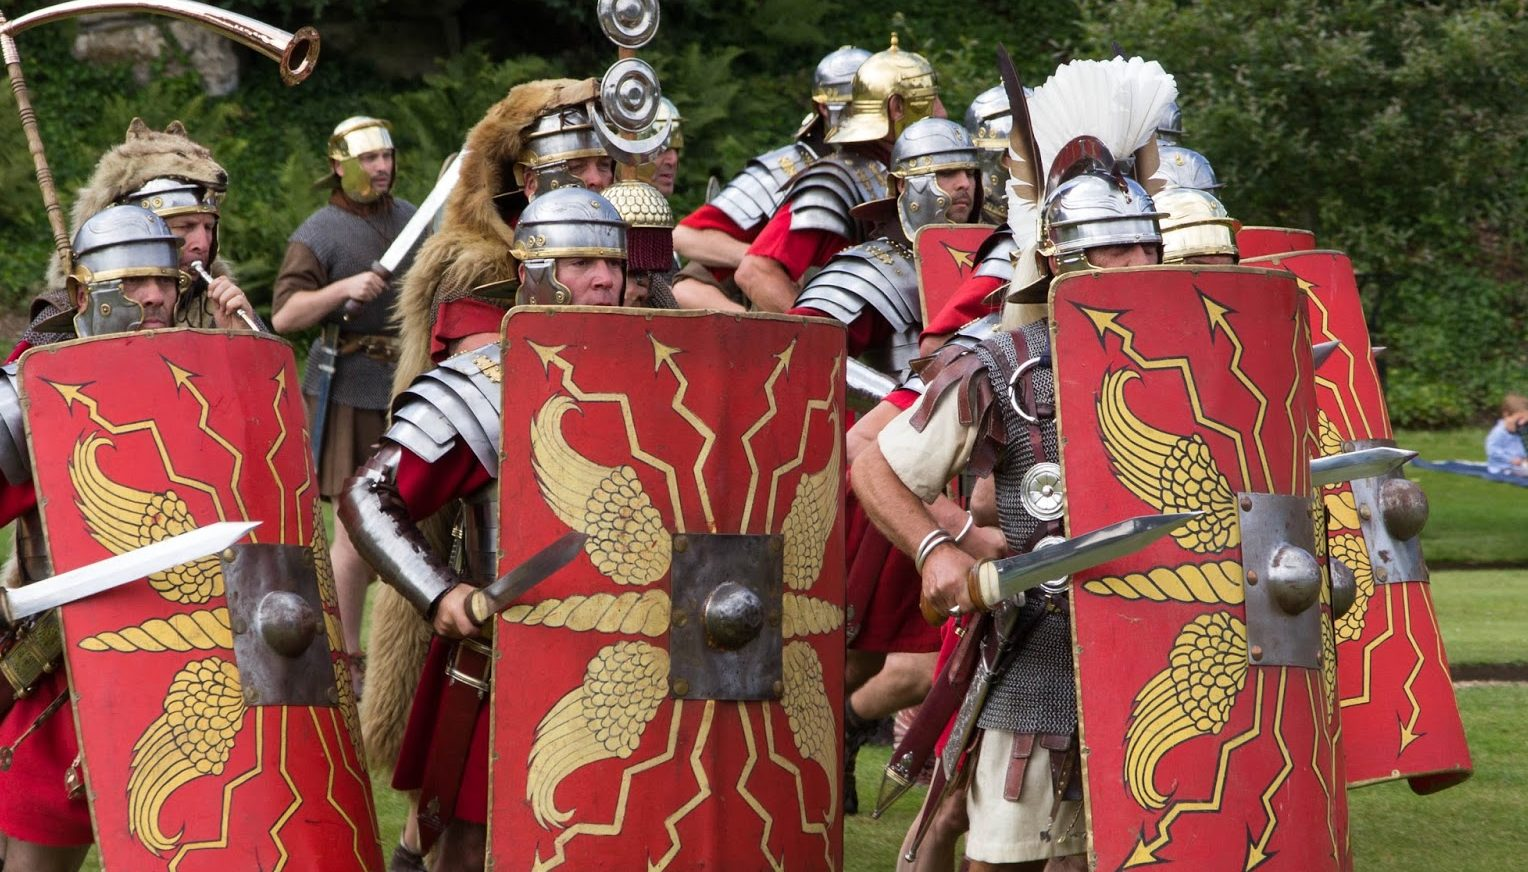 Roman soldiers use shields and swords